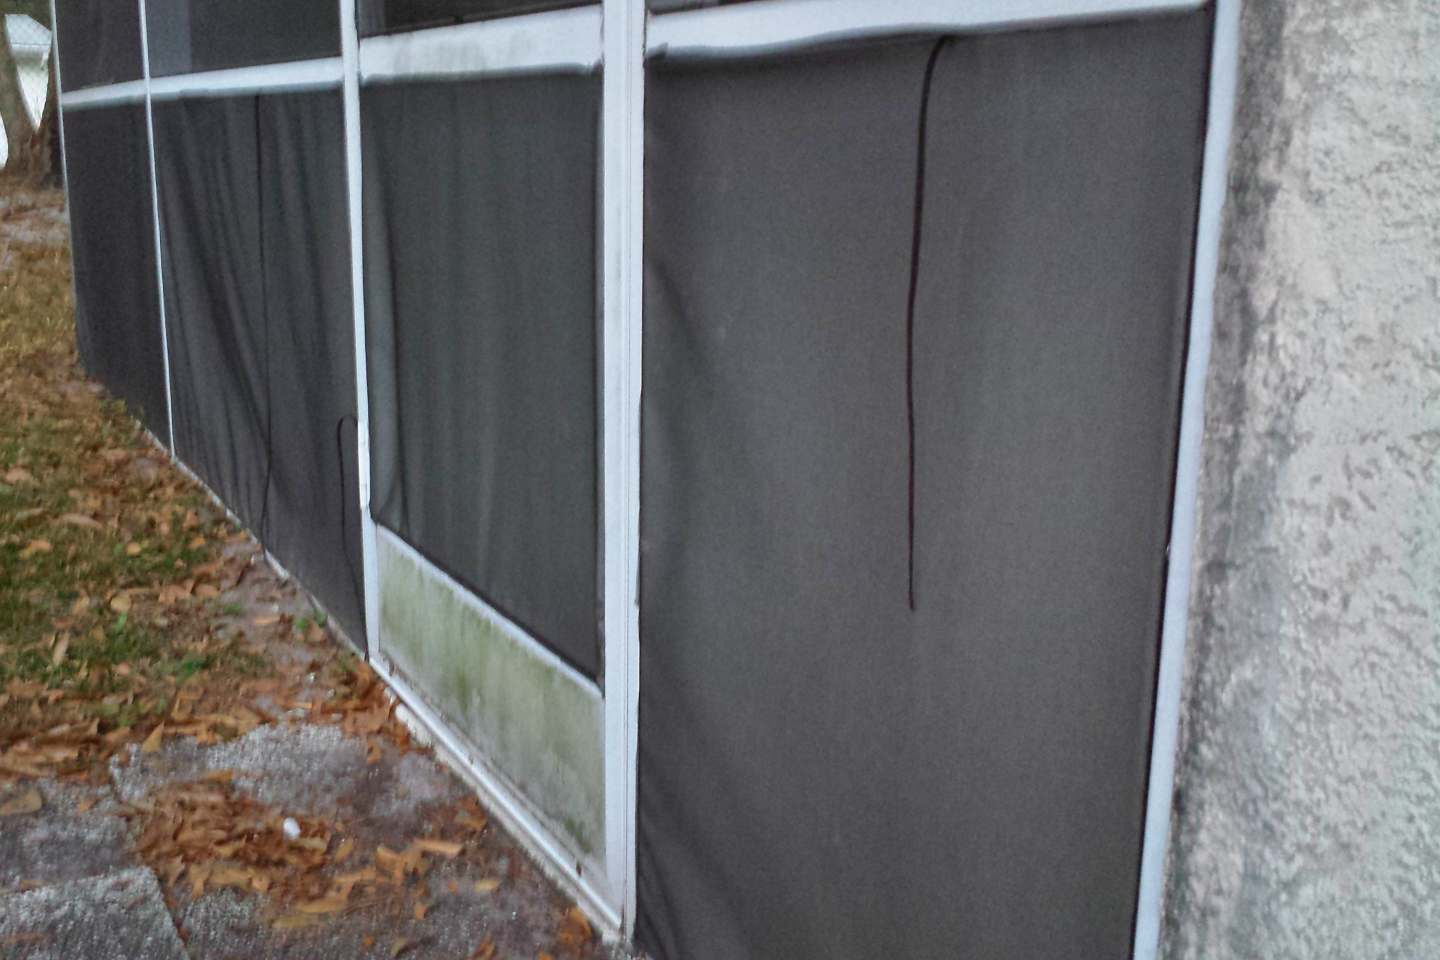 08-pool-enclosure-florida-glass-before-re-screen.jpg